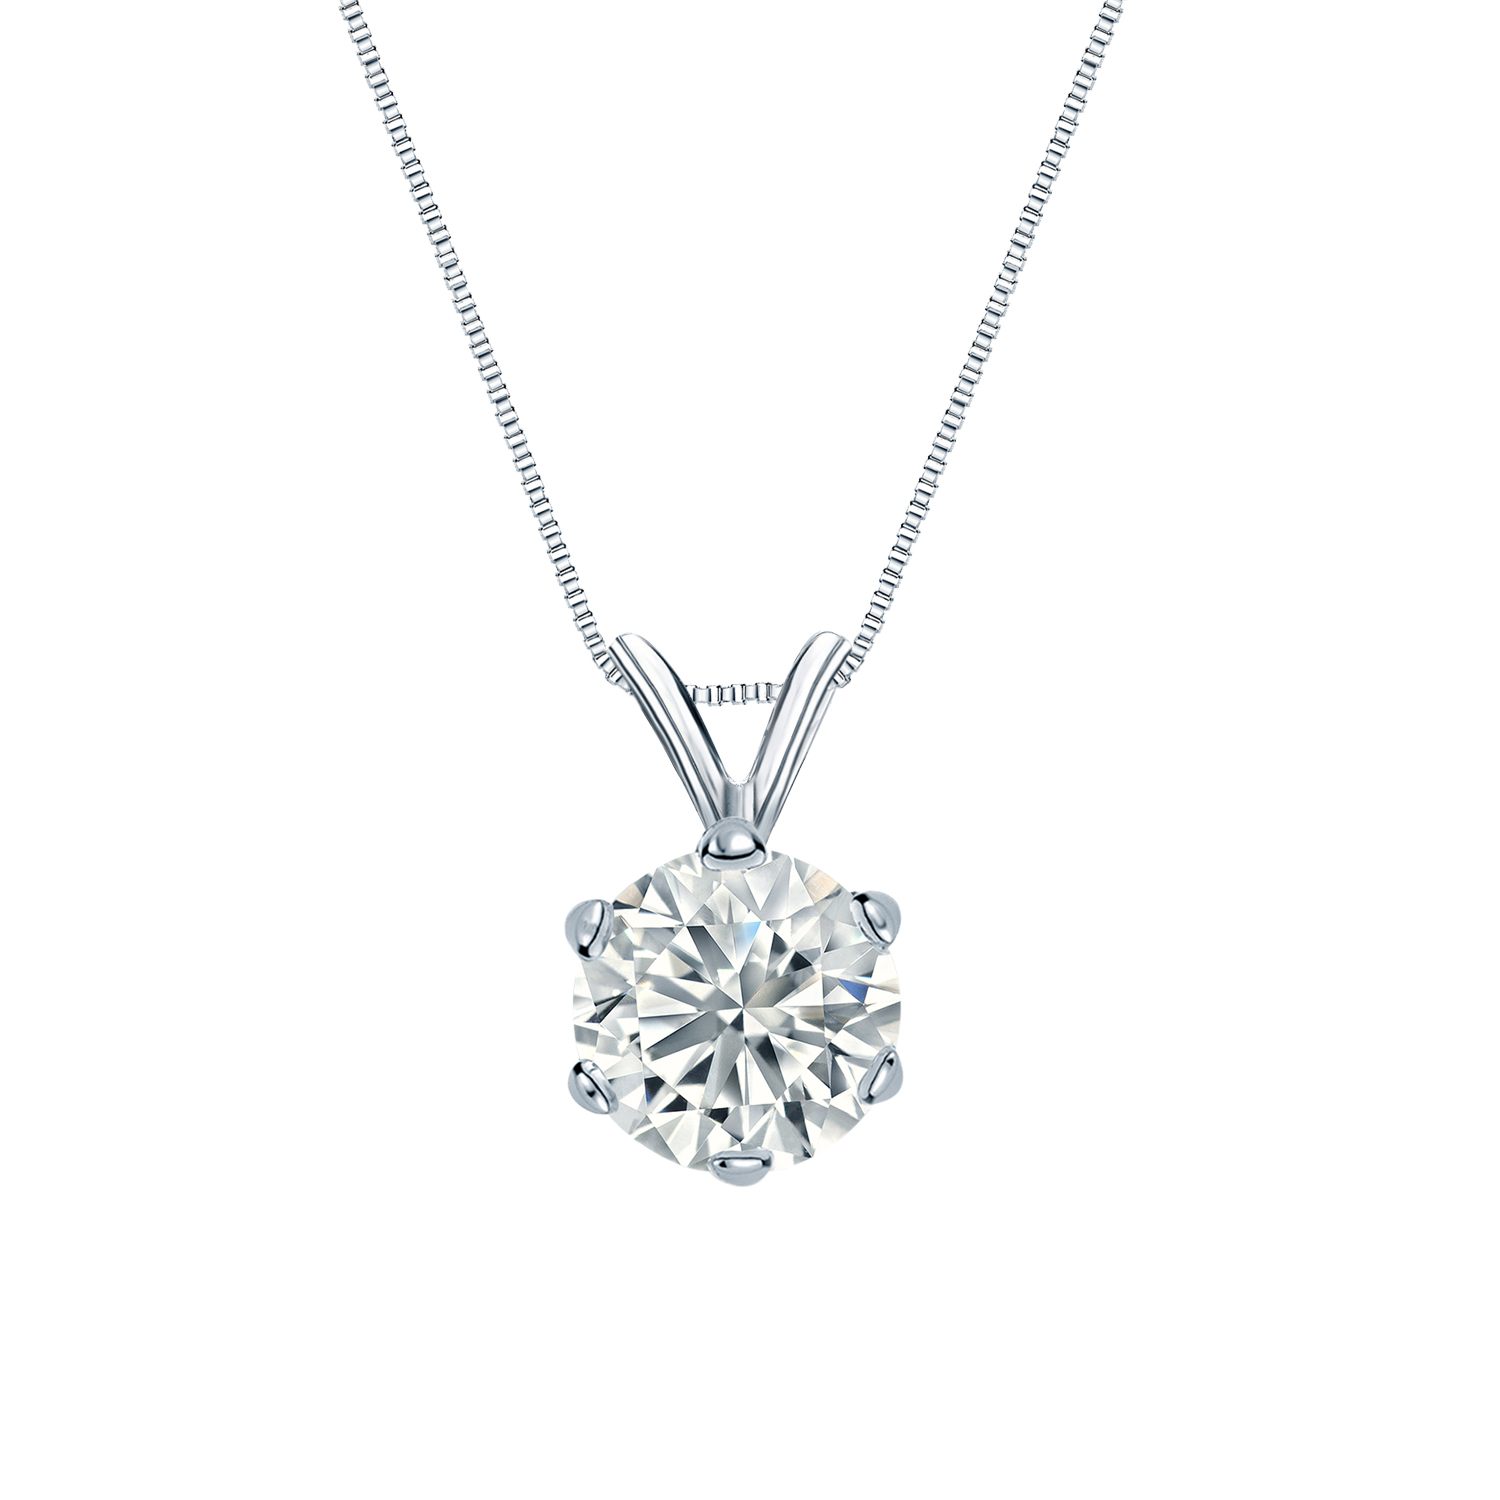 Certified 0.20 ct. tw. Round Diamond Solitaire Pendant in 14k White Gold 6-Prong (I-J, I1)